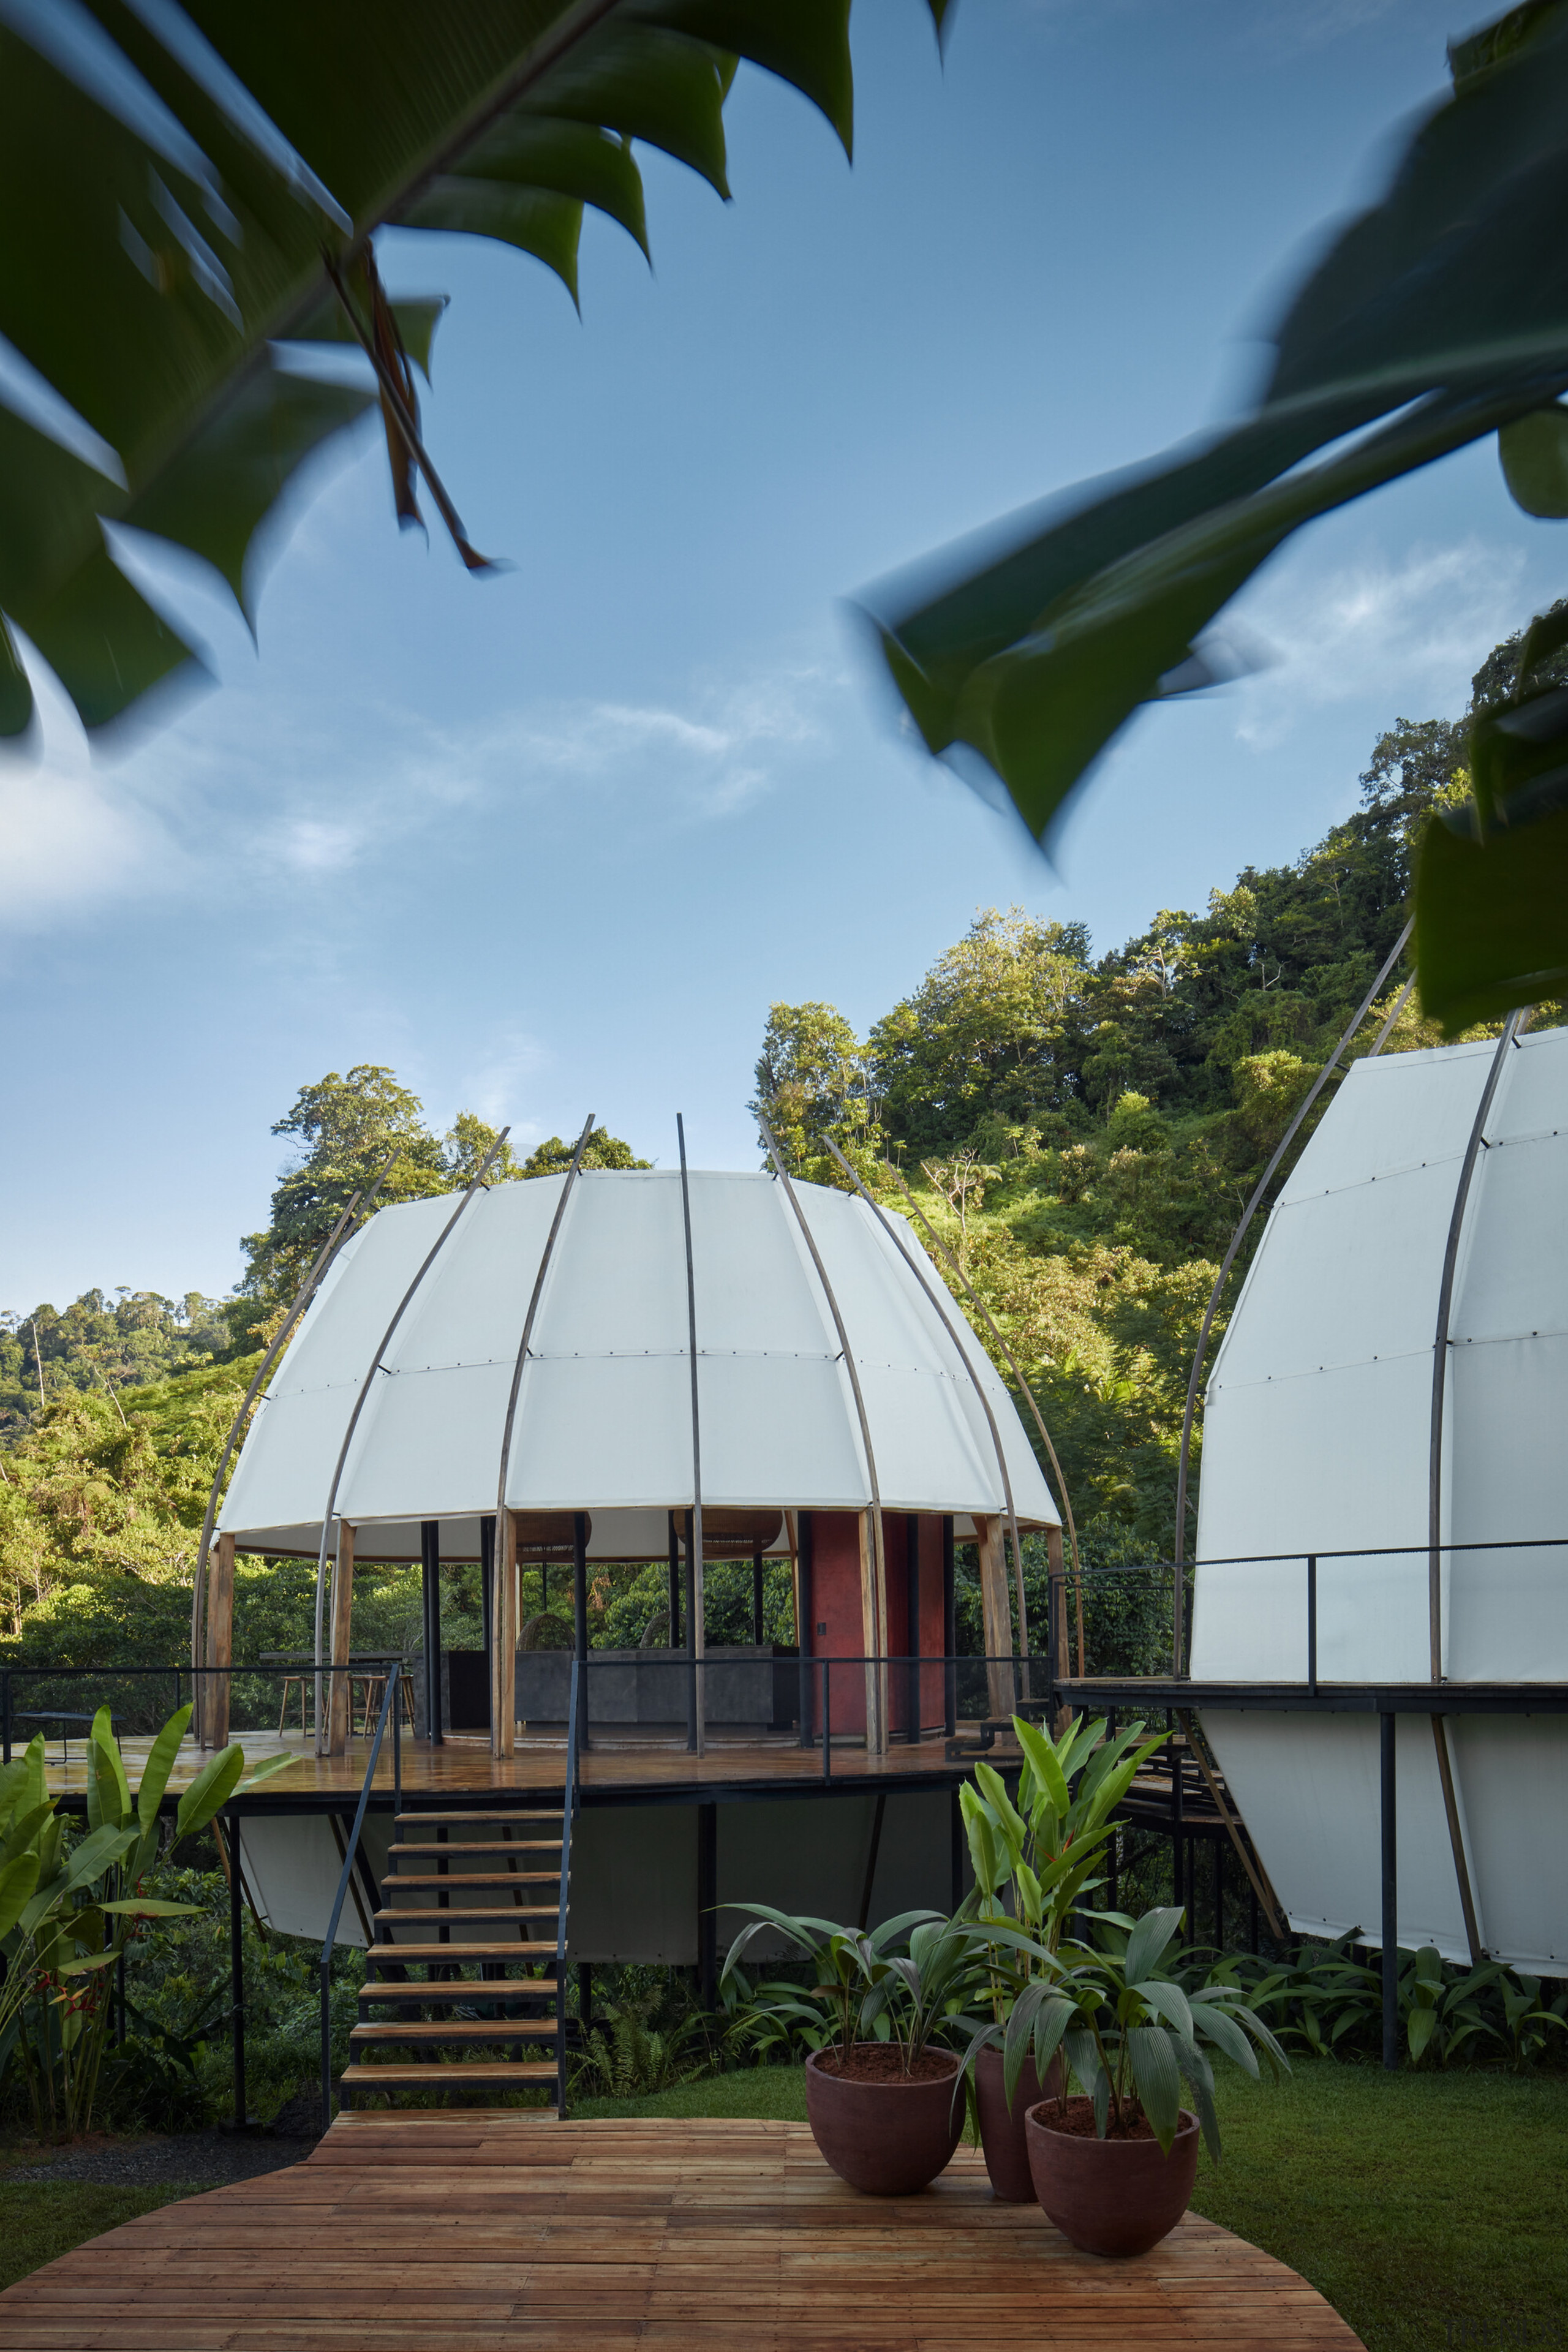 The Coco offers simplicity and a sense of